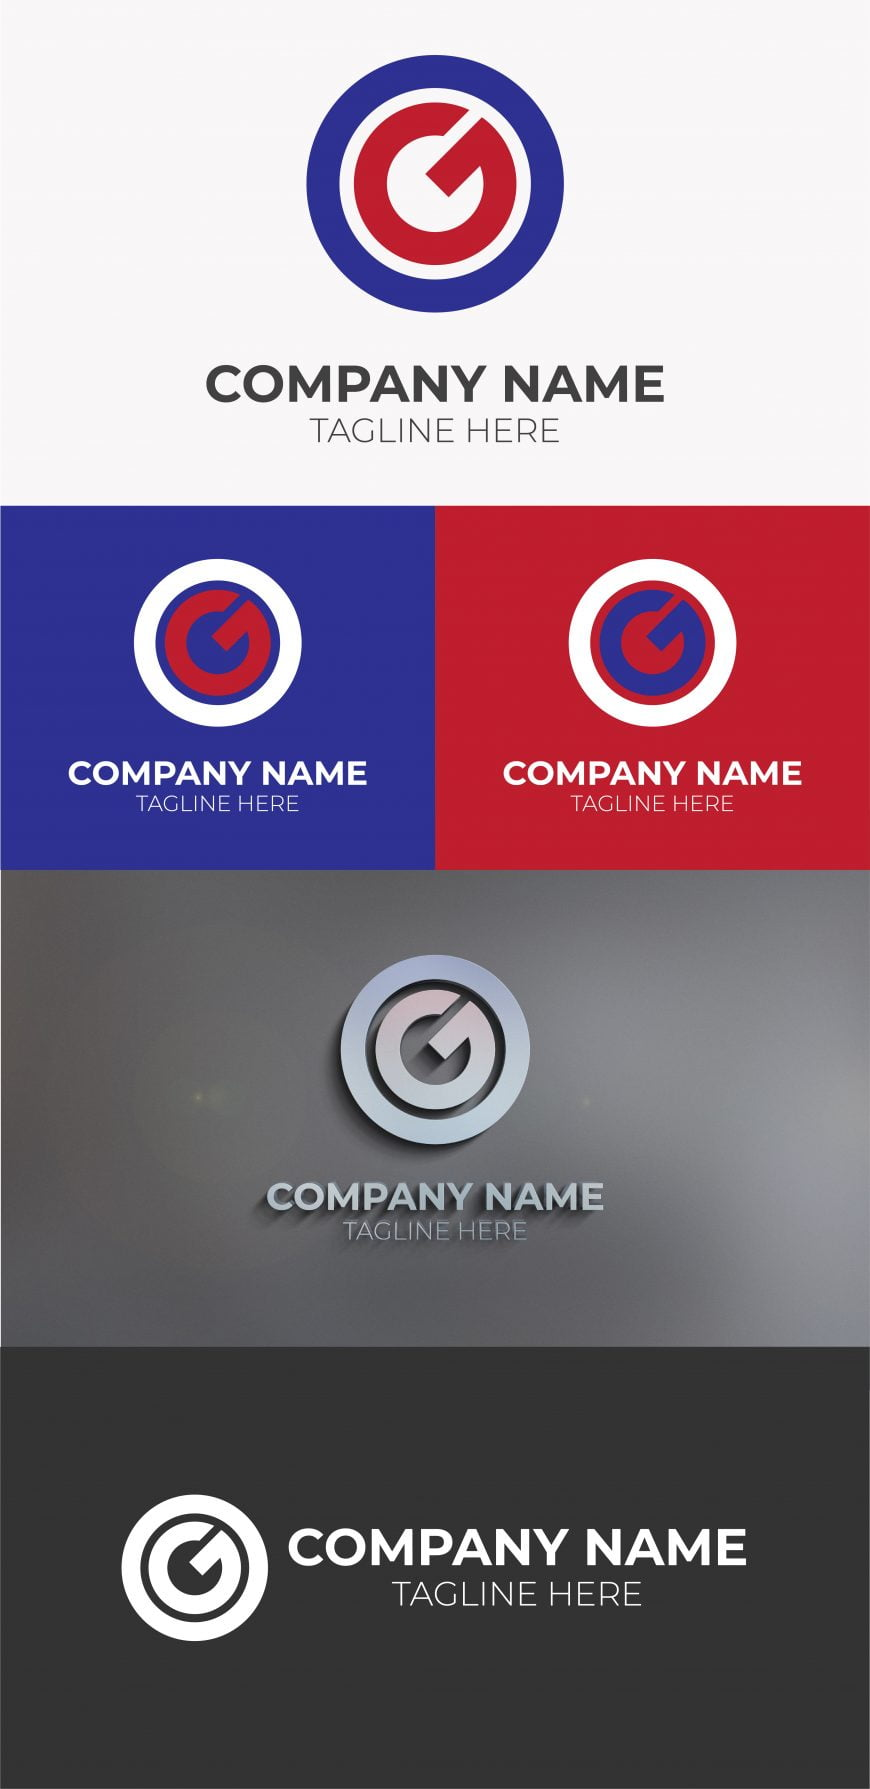 og-logo-free-vector-template-scaled